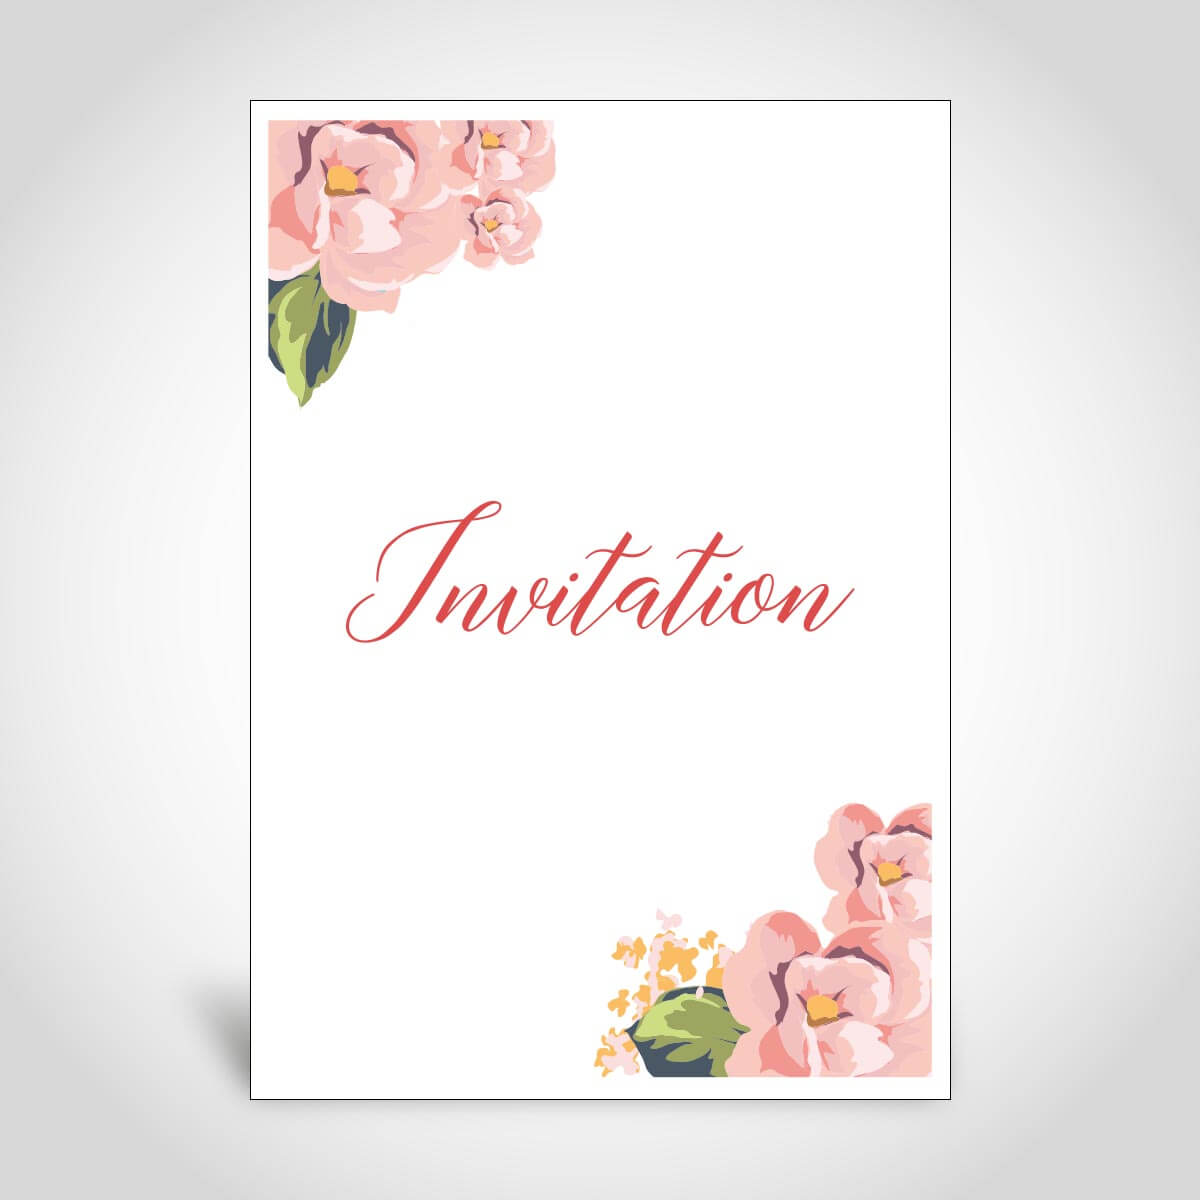 Indian Wedding Cards - Our Invitation set of the month (February 2020) CardFusion